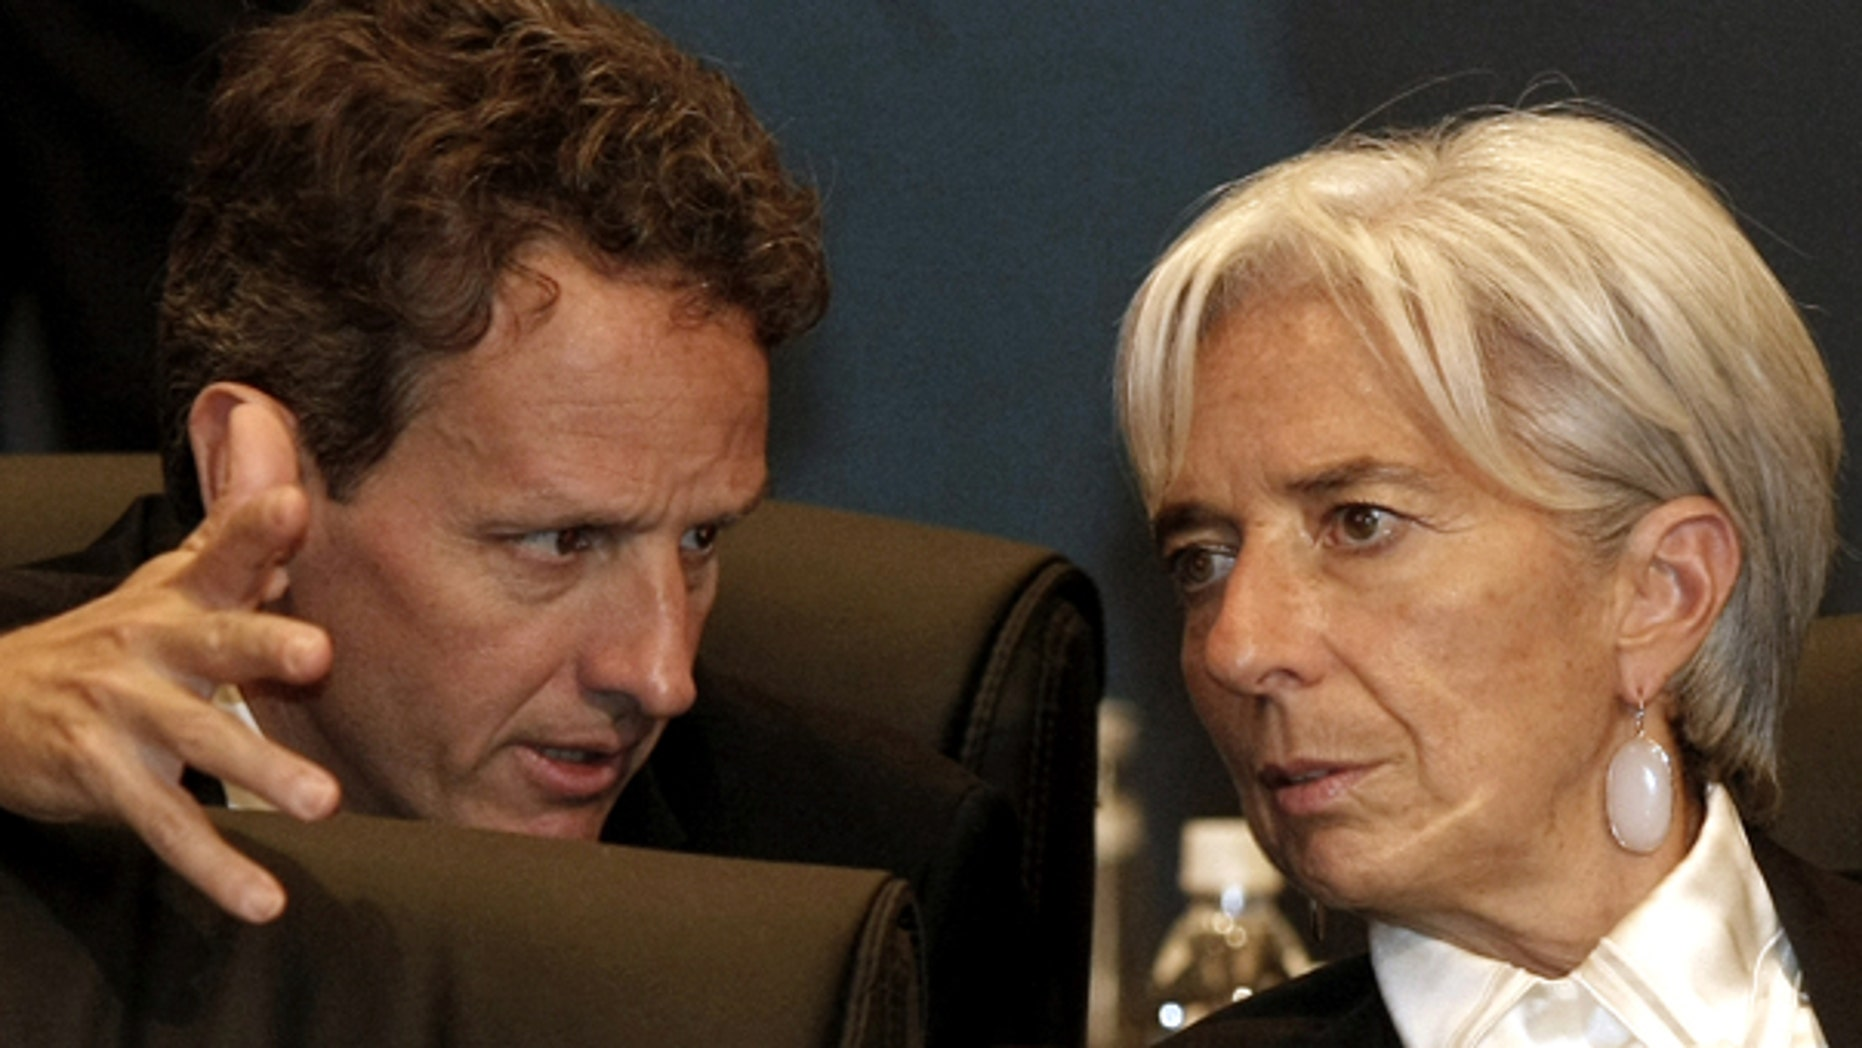 Oct. 22: U.S. Treasury Secretary Timothy Geithner, left, talks with France's Finance Minister Christine Lagarde during the G20 Finance Ministers and Central Bank Governors meeting in Gyeongju, South Korea.